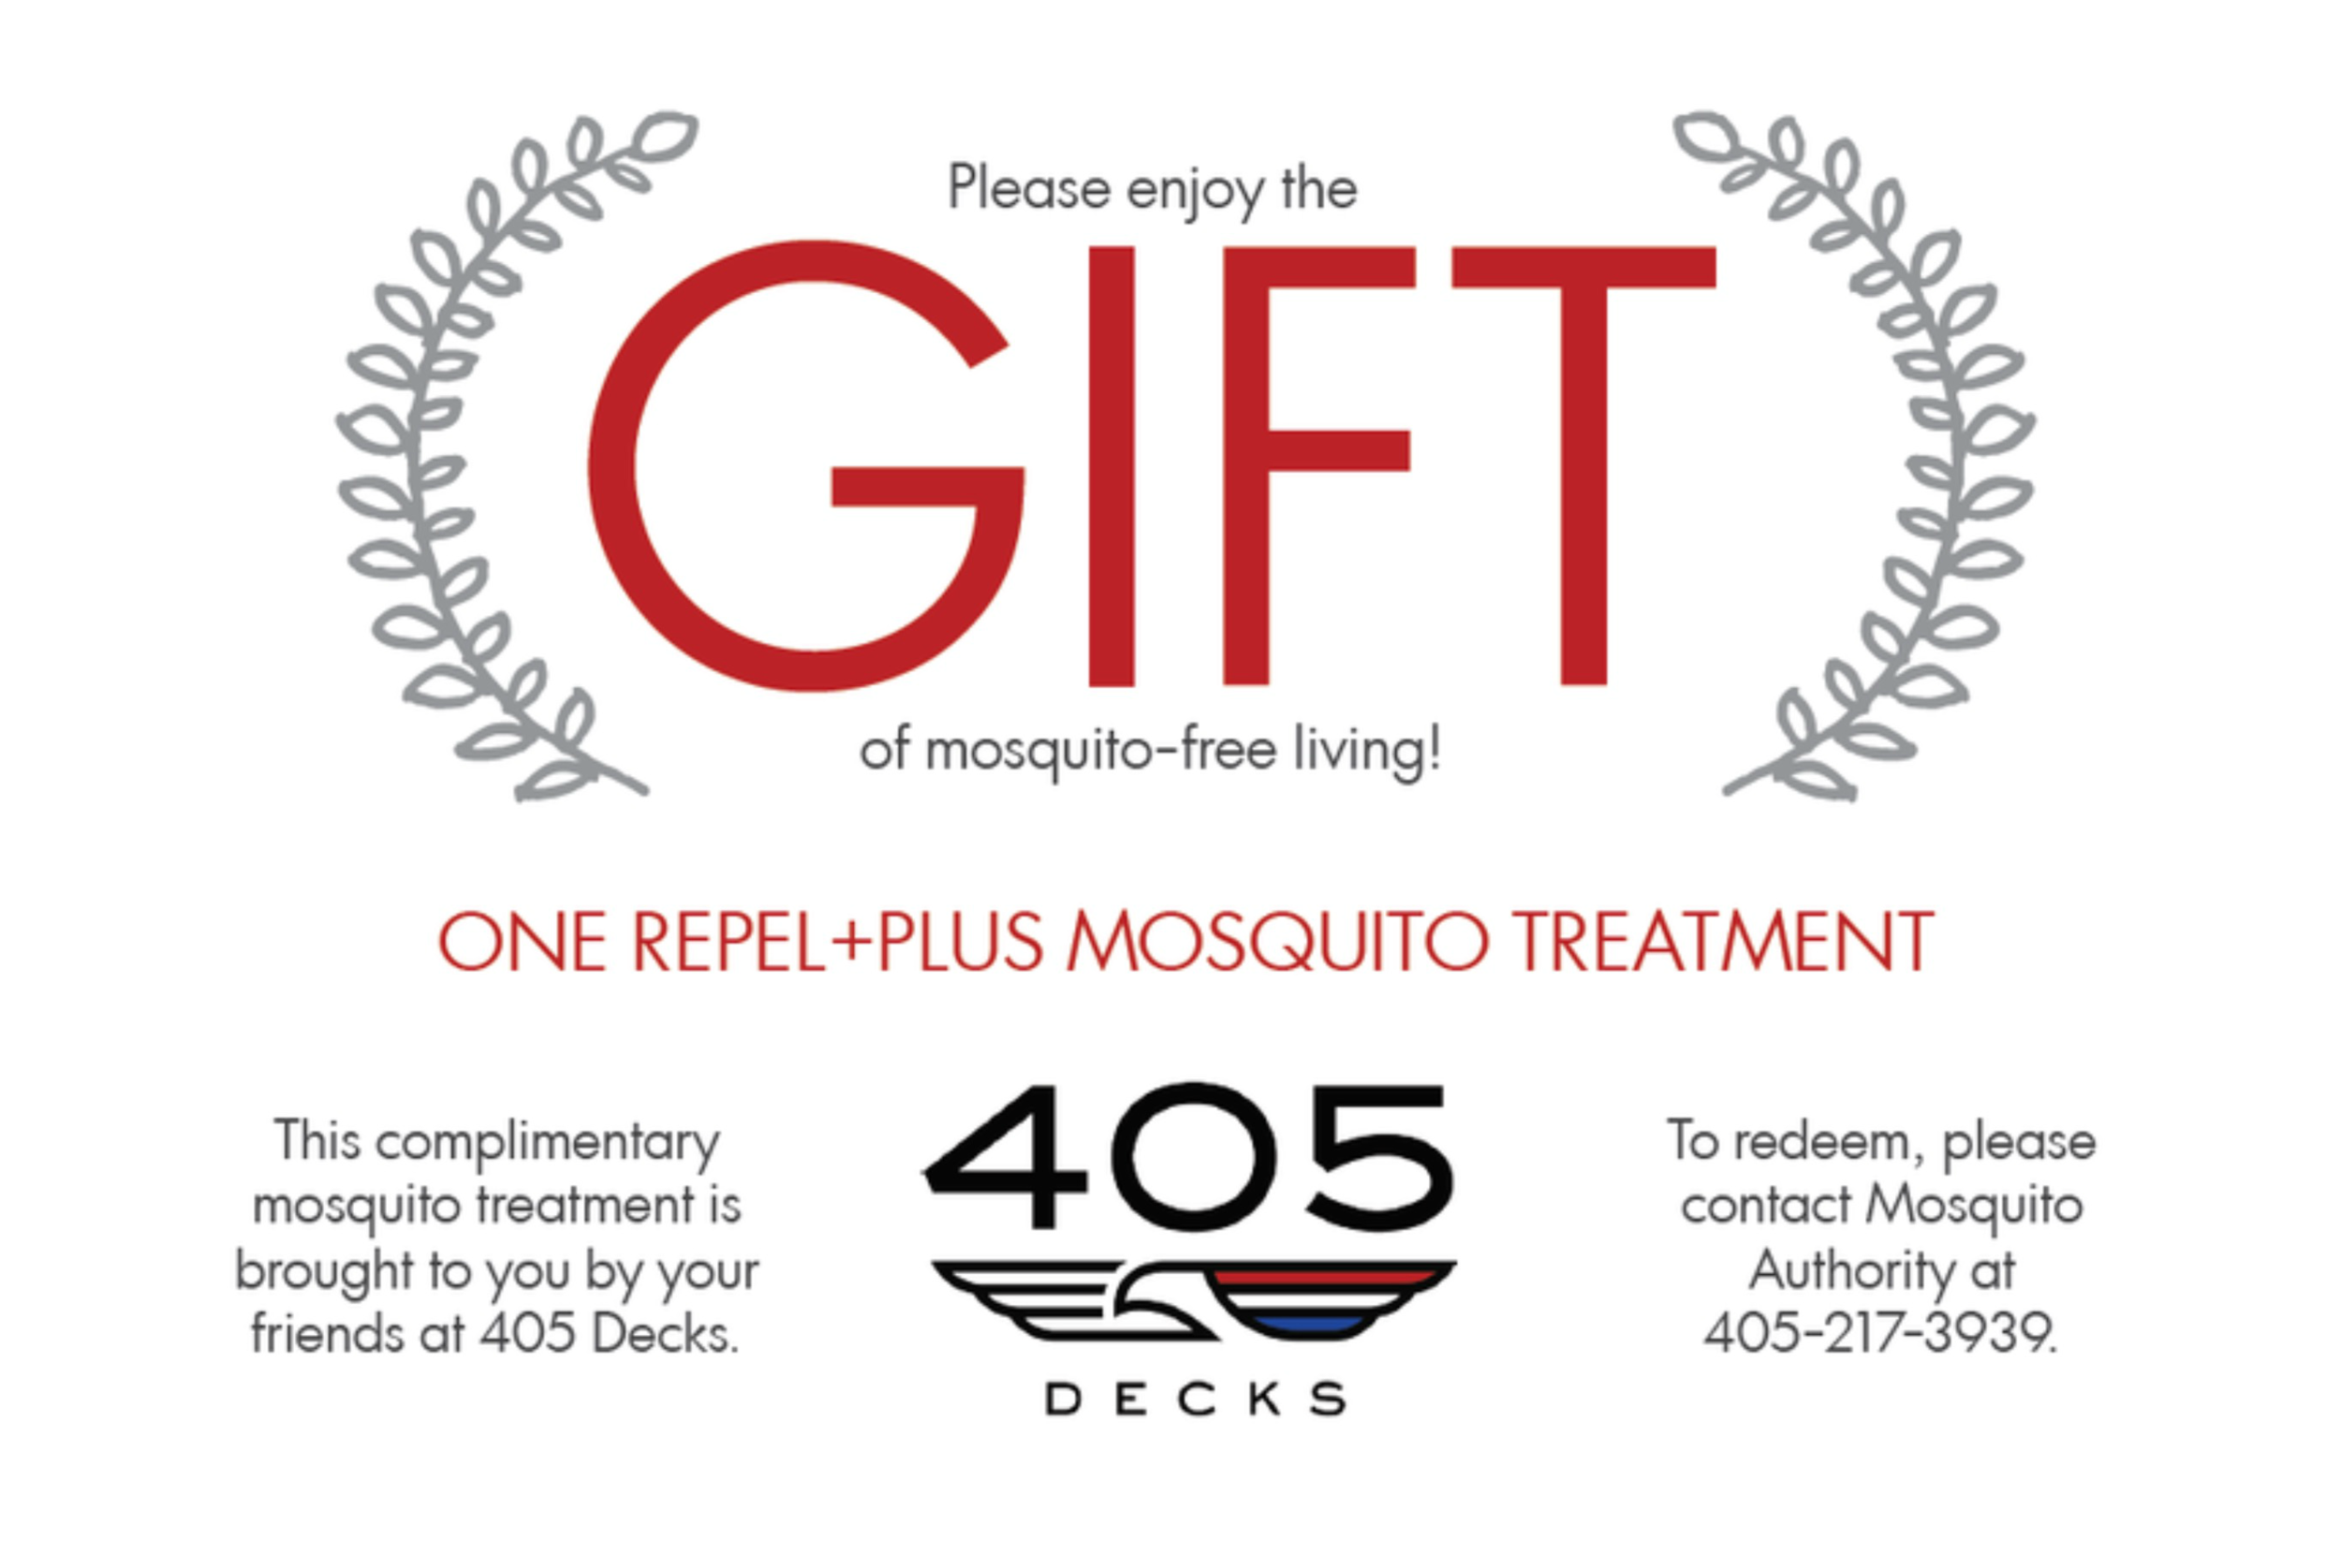 405 Decks would like to extend to you a FREE initial service from Mosquito Authority! If you like their services, just continue contracting through them directly!